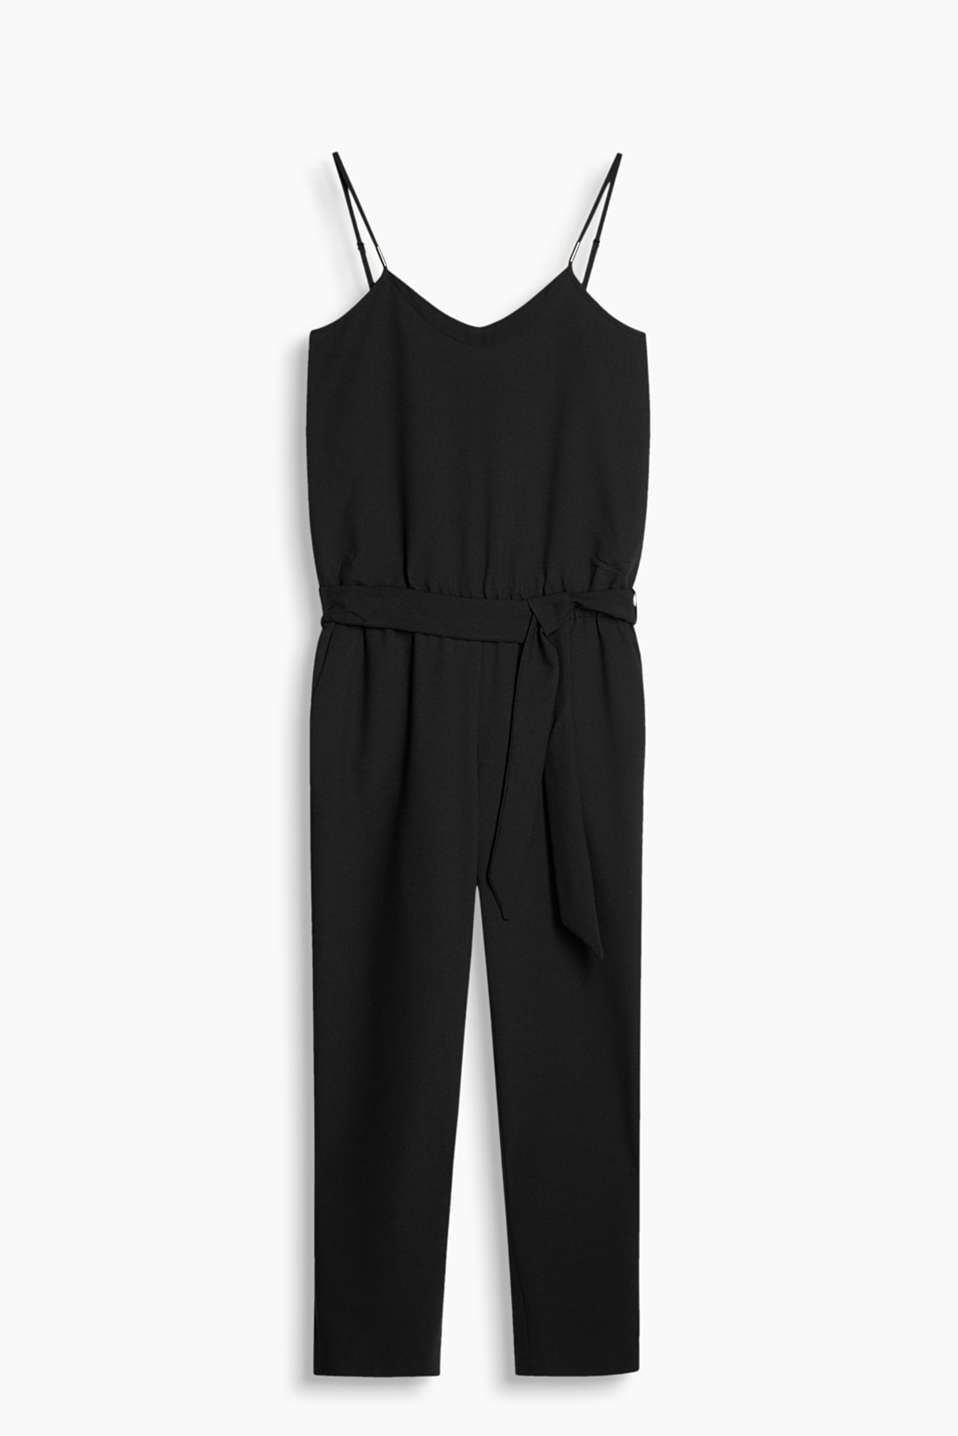 Flowing crêpe jumpsuit with adjustable spaghetti straps, a highlighted V-neckline and a wide tie-around belt